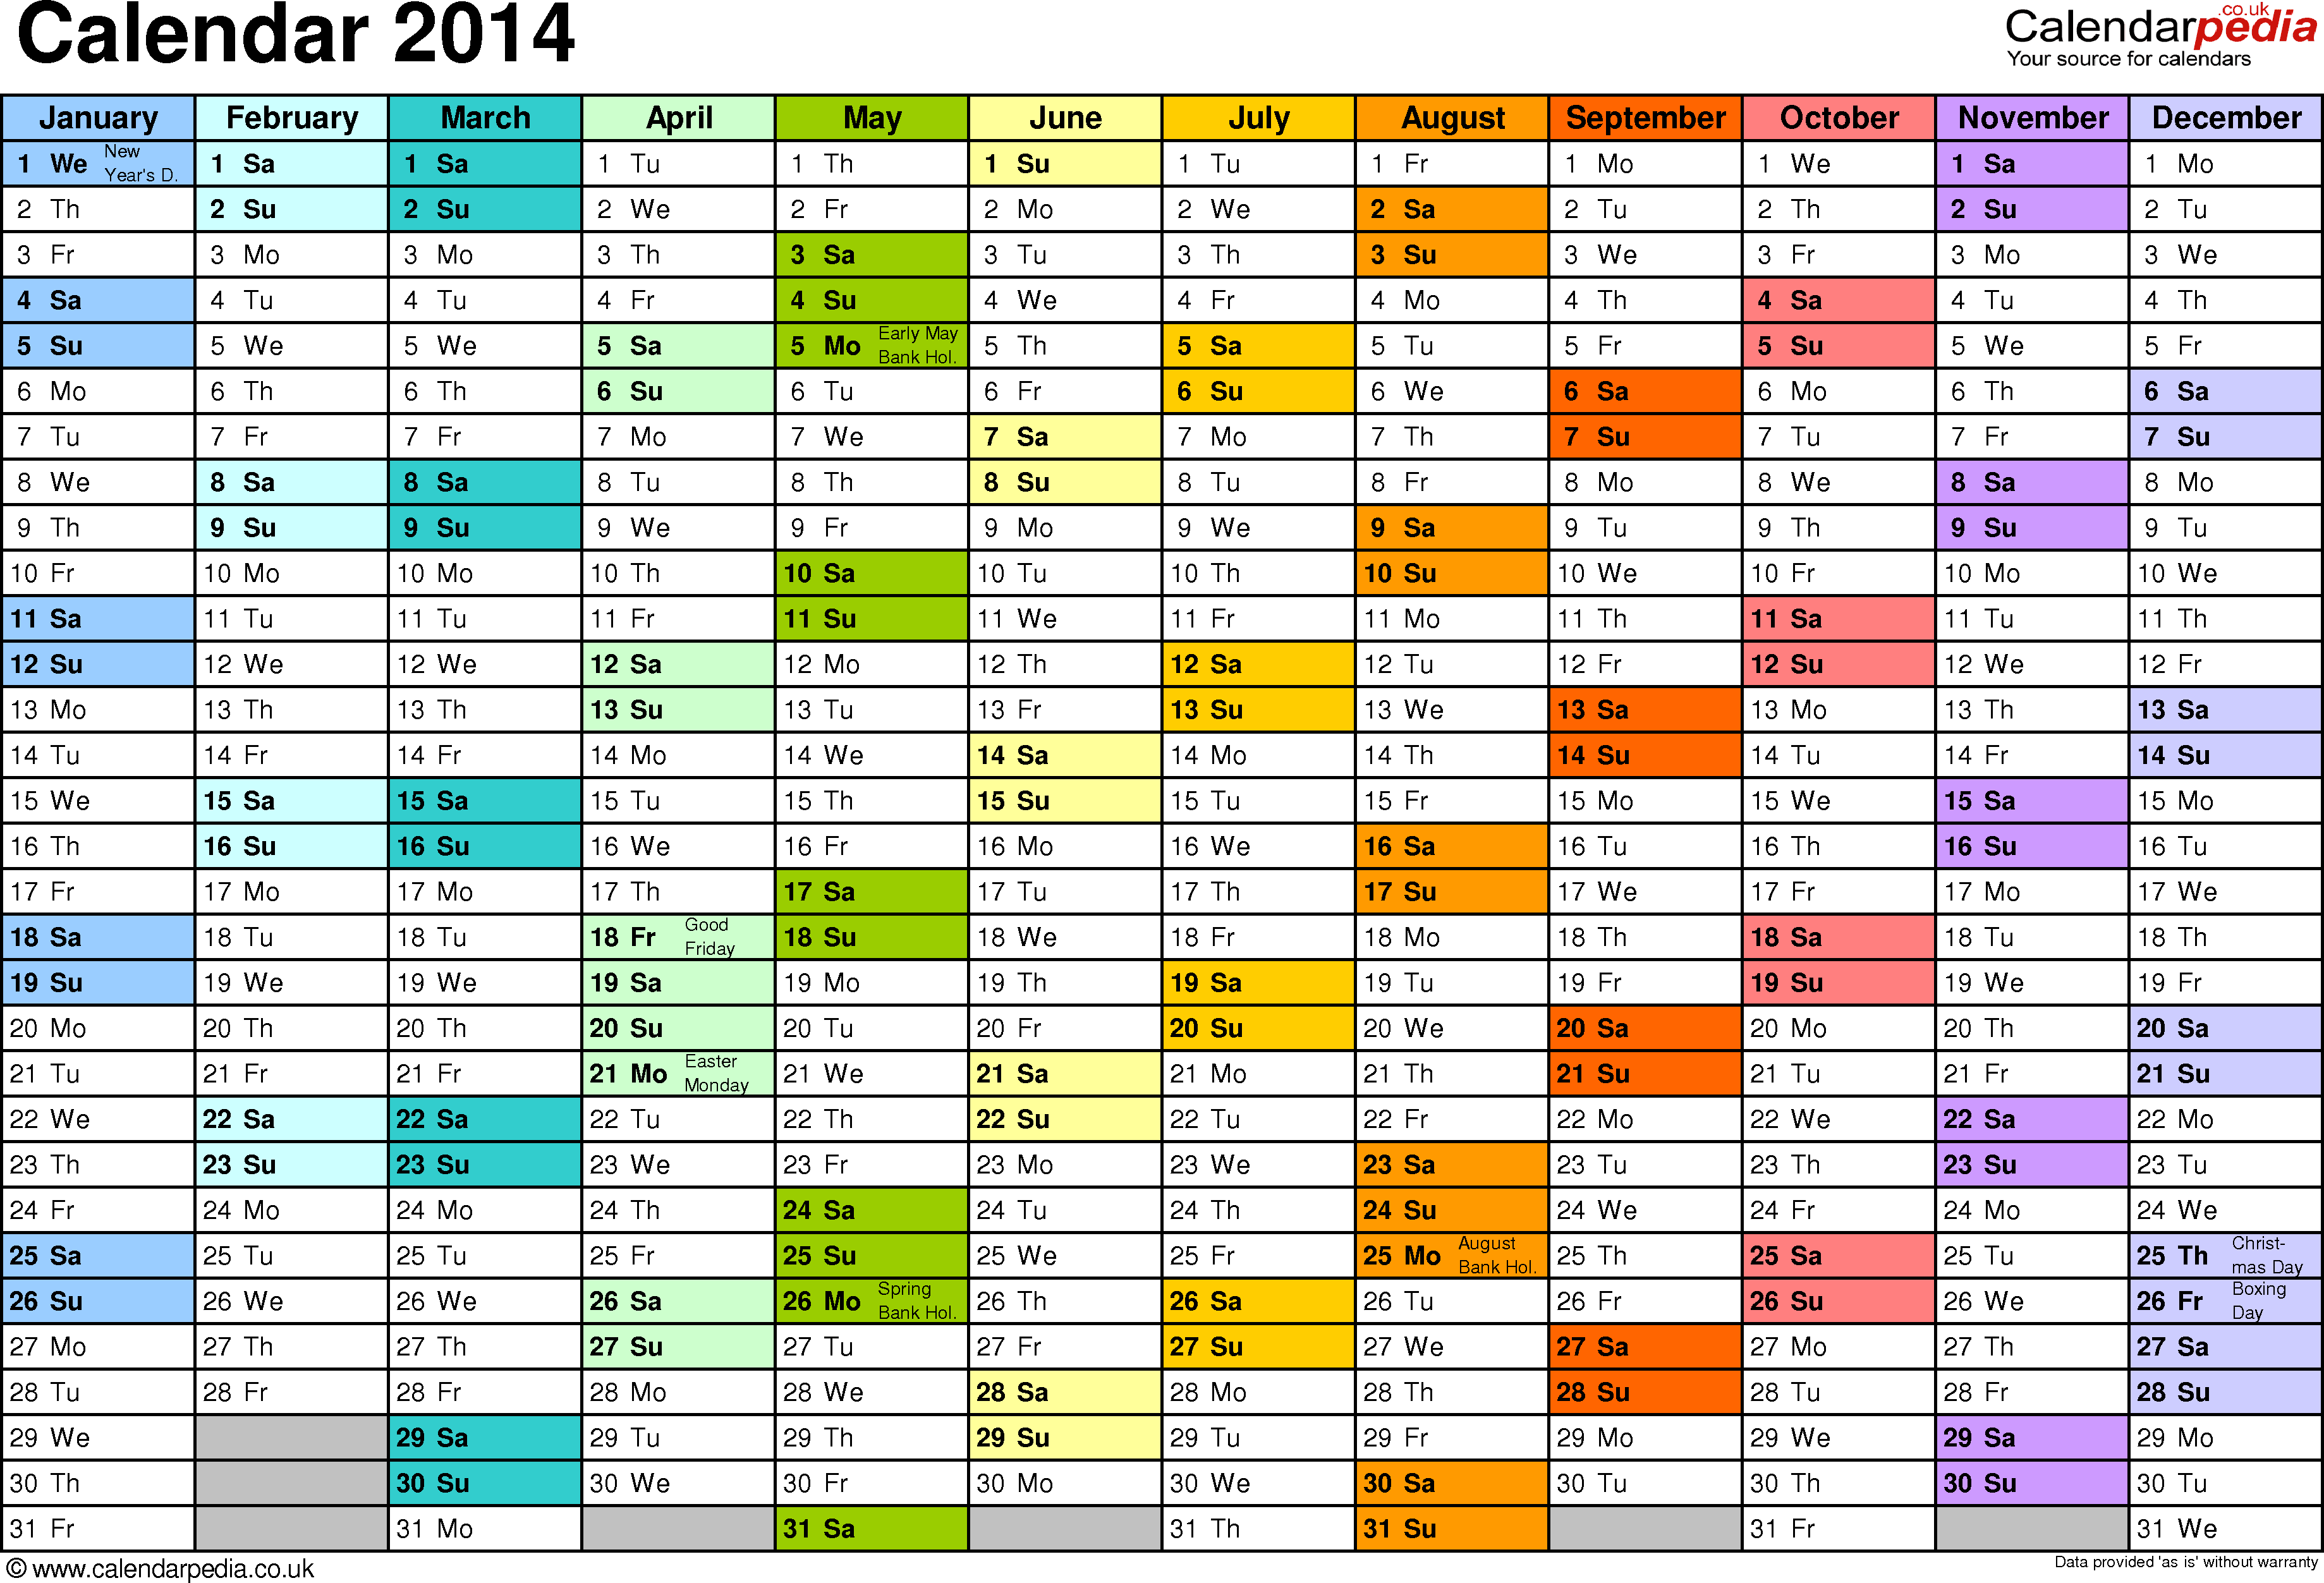 Template 2: Yearly calendar 2014 as Excel template, landscape orientation, A4, 1 page, months horizontally, days vertically, in colour, with UK bank holidays and week numbers